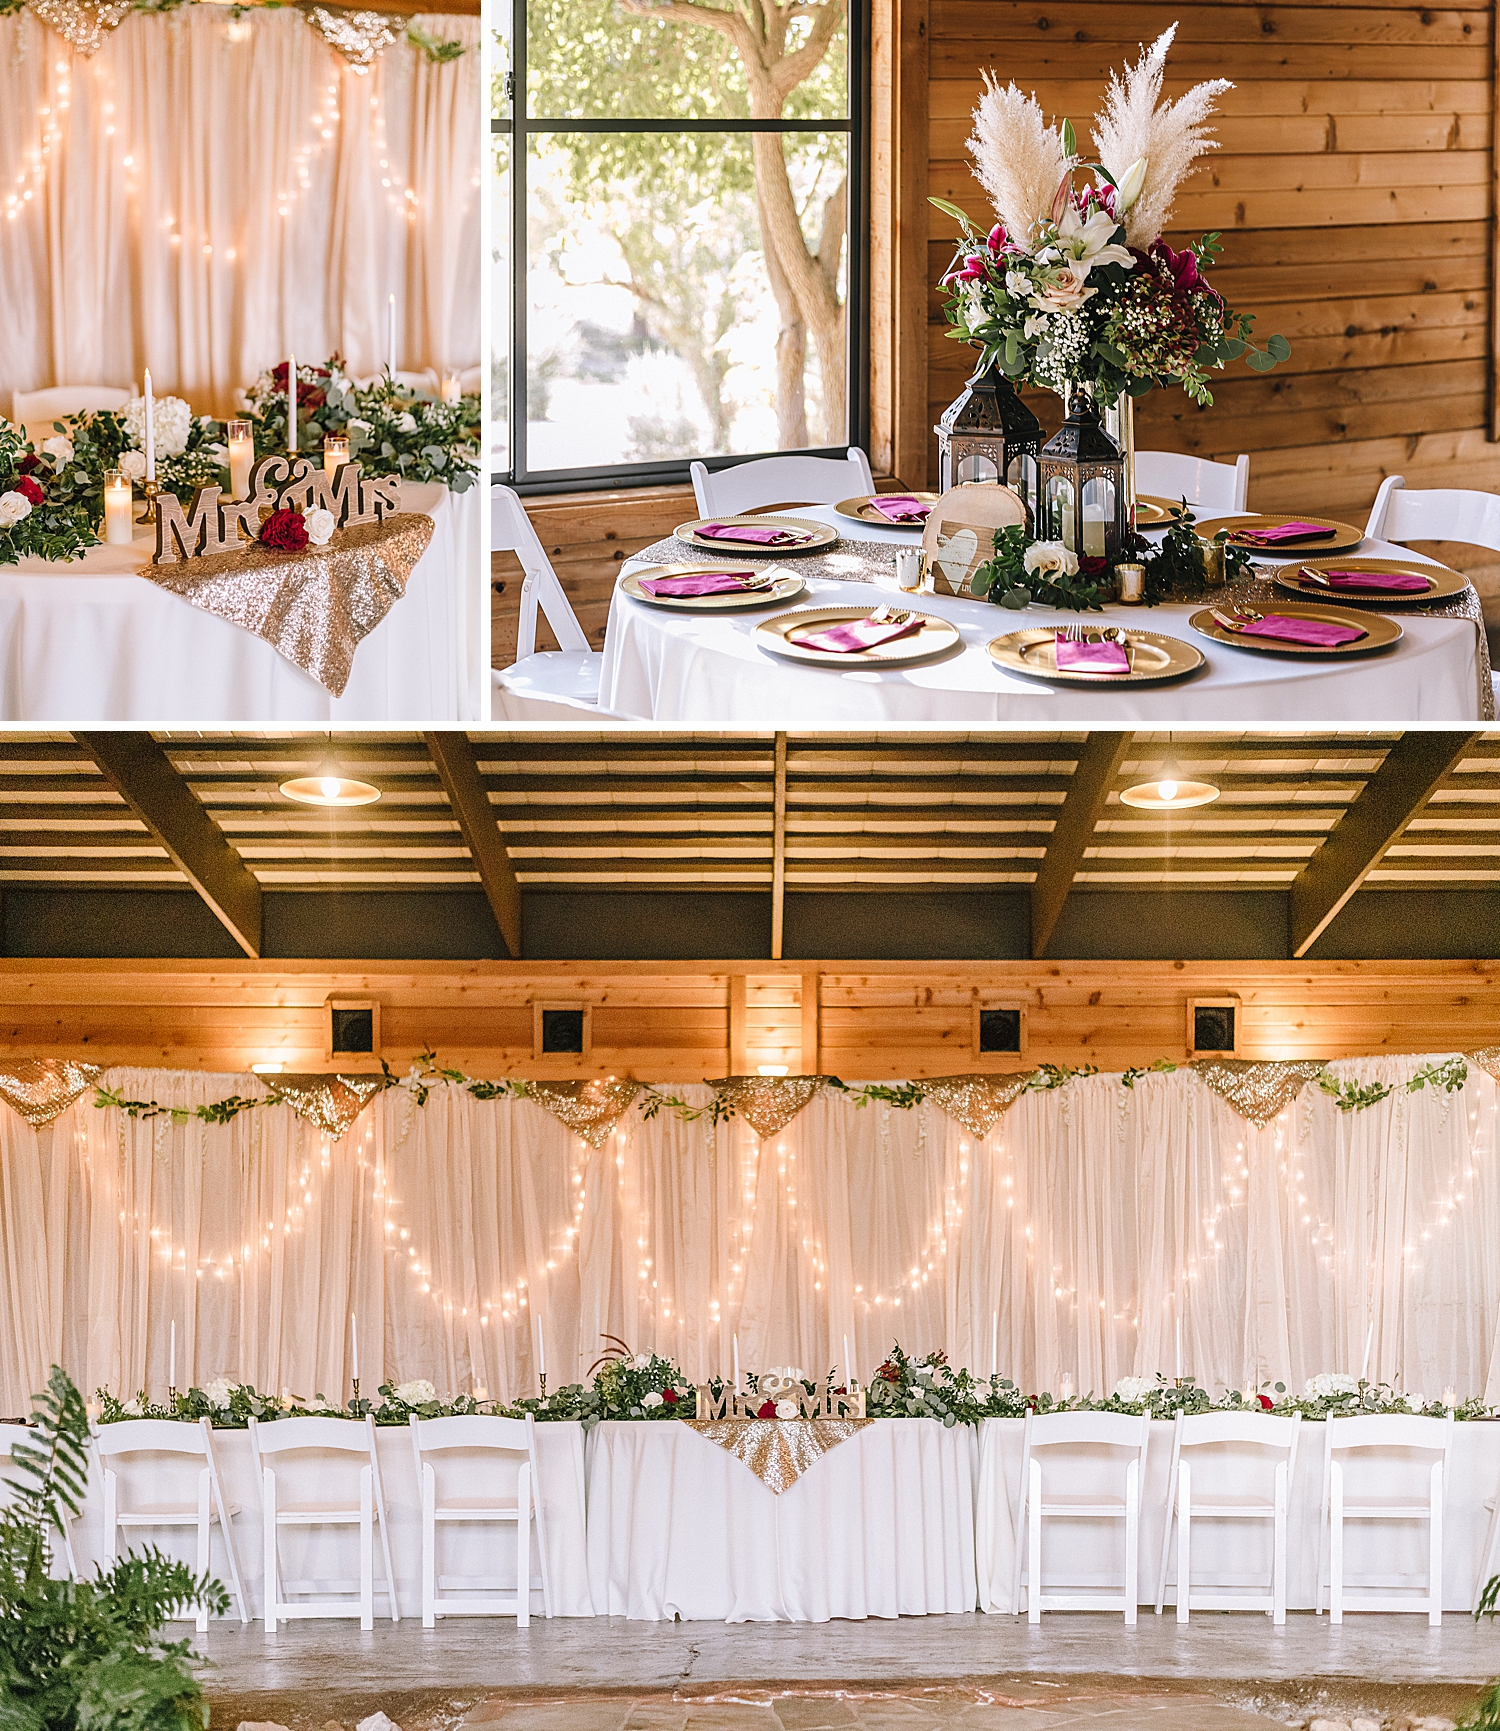 Geronimo-Oaks-Wedding-Venue-Seguin-Texas-Elegant-Navy-Burgundy-Wedding-Carly-Barton-Photography_0004.jpg